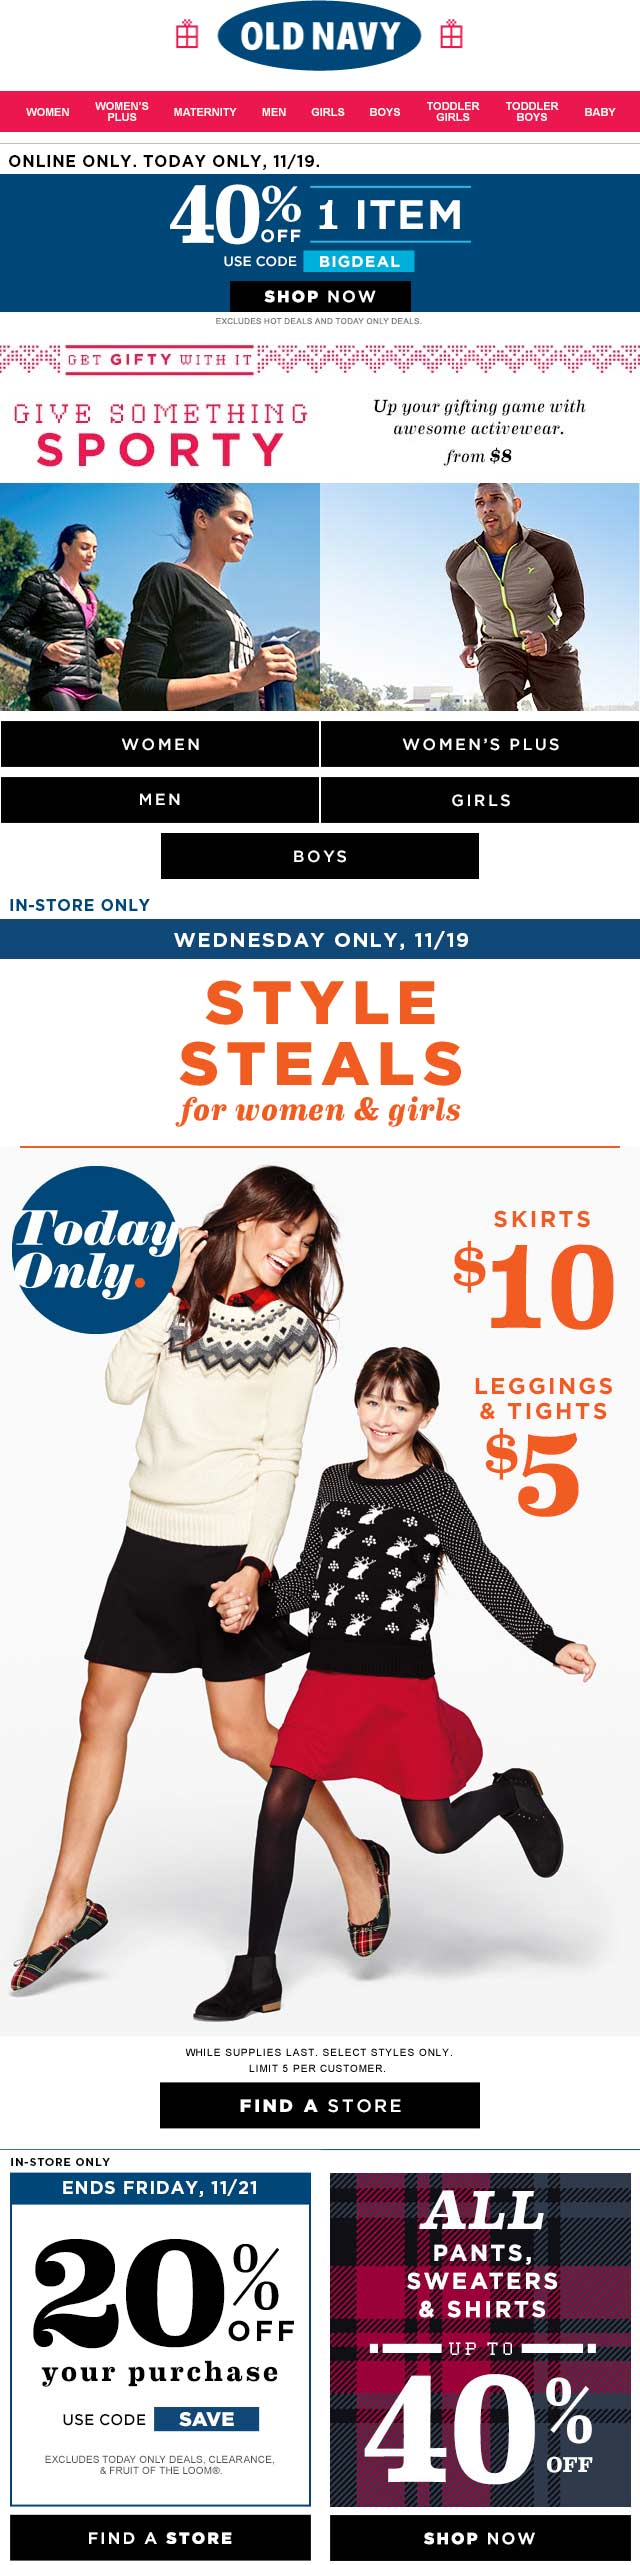 Old Navy Coupon August 2017 20% off today at Old Navy, or 40% online via promo code BIGDEAL